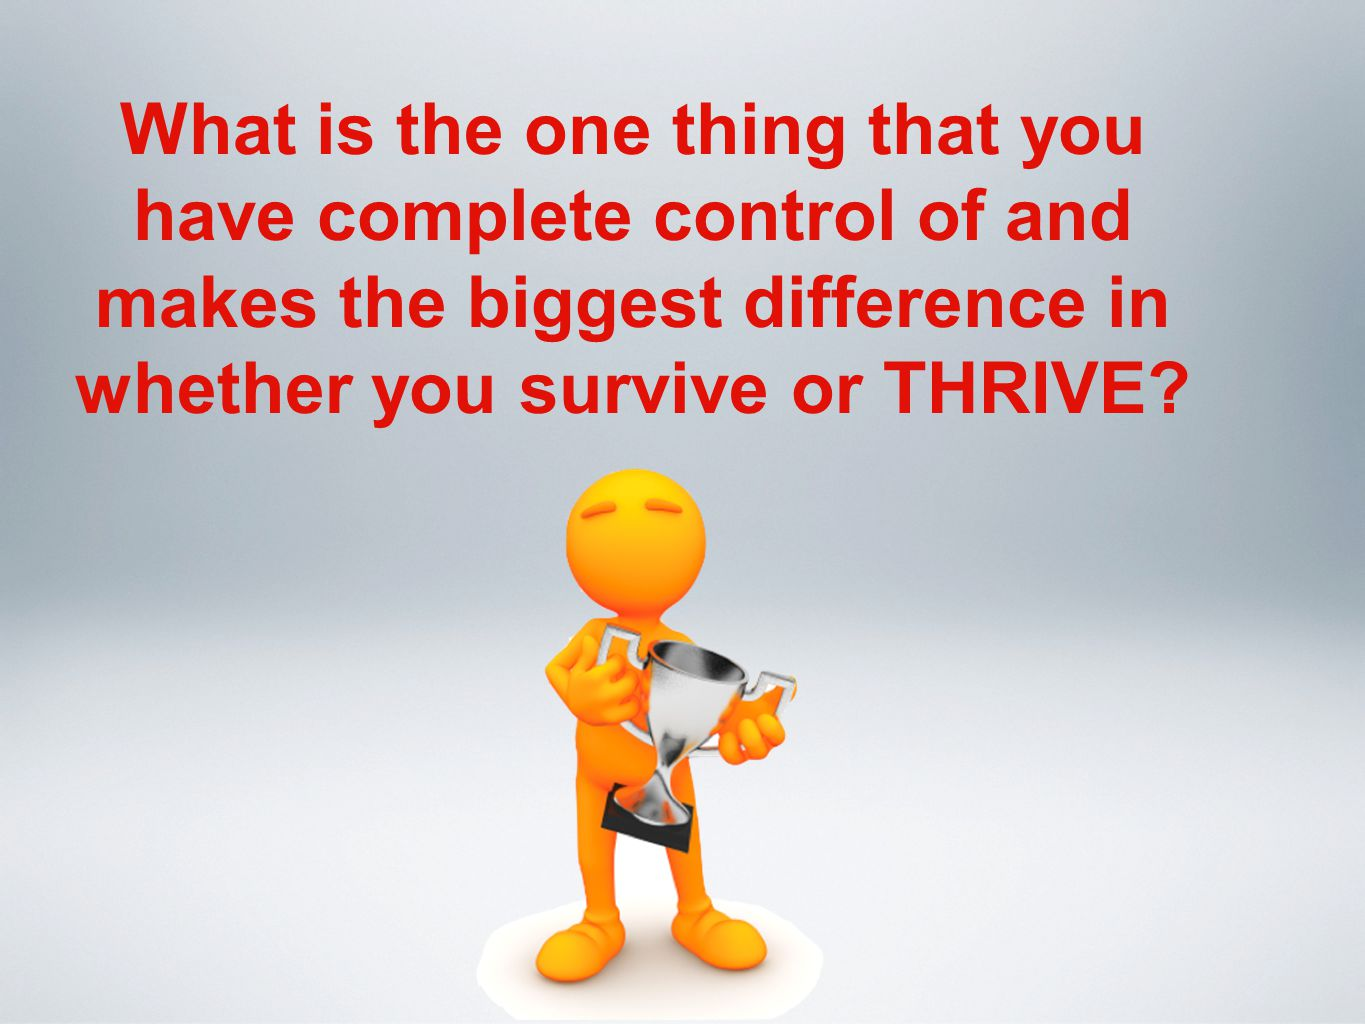 What is the one thing that you have complete control of and makes the biggest difference in whether you survive or THRIVE?